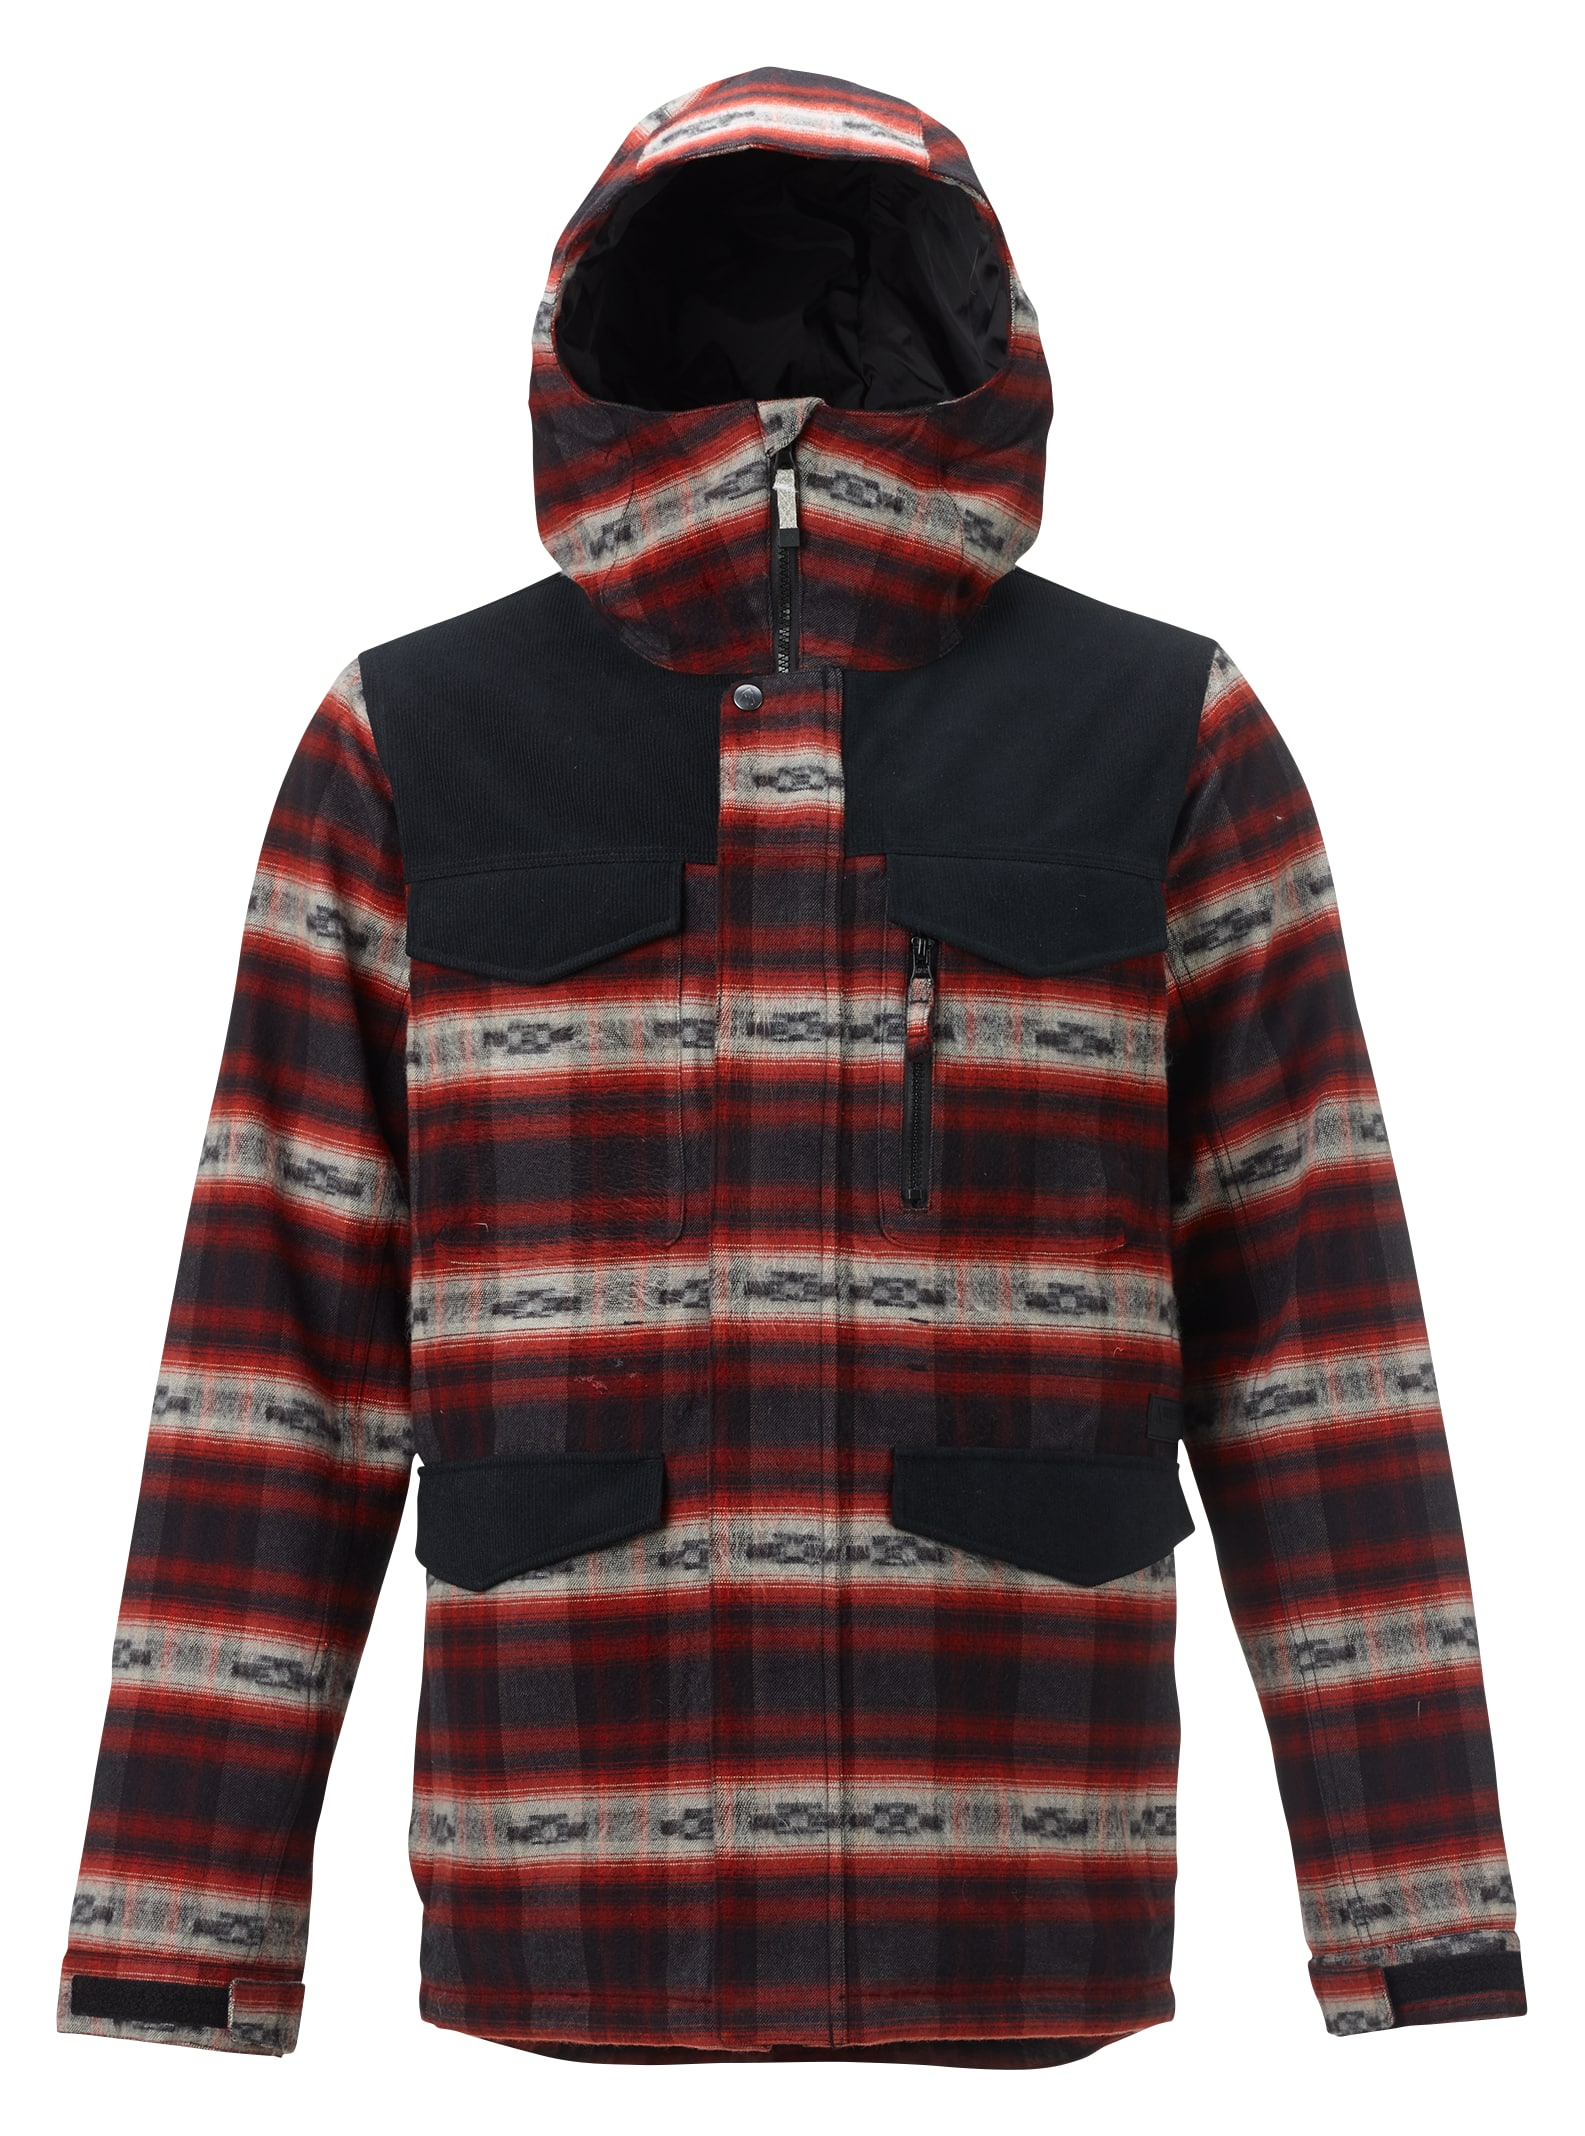 3189b5a0 Men's Burton Covert Jacket | Burton Snowboards Winter 2018